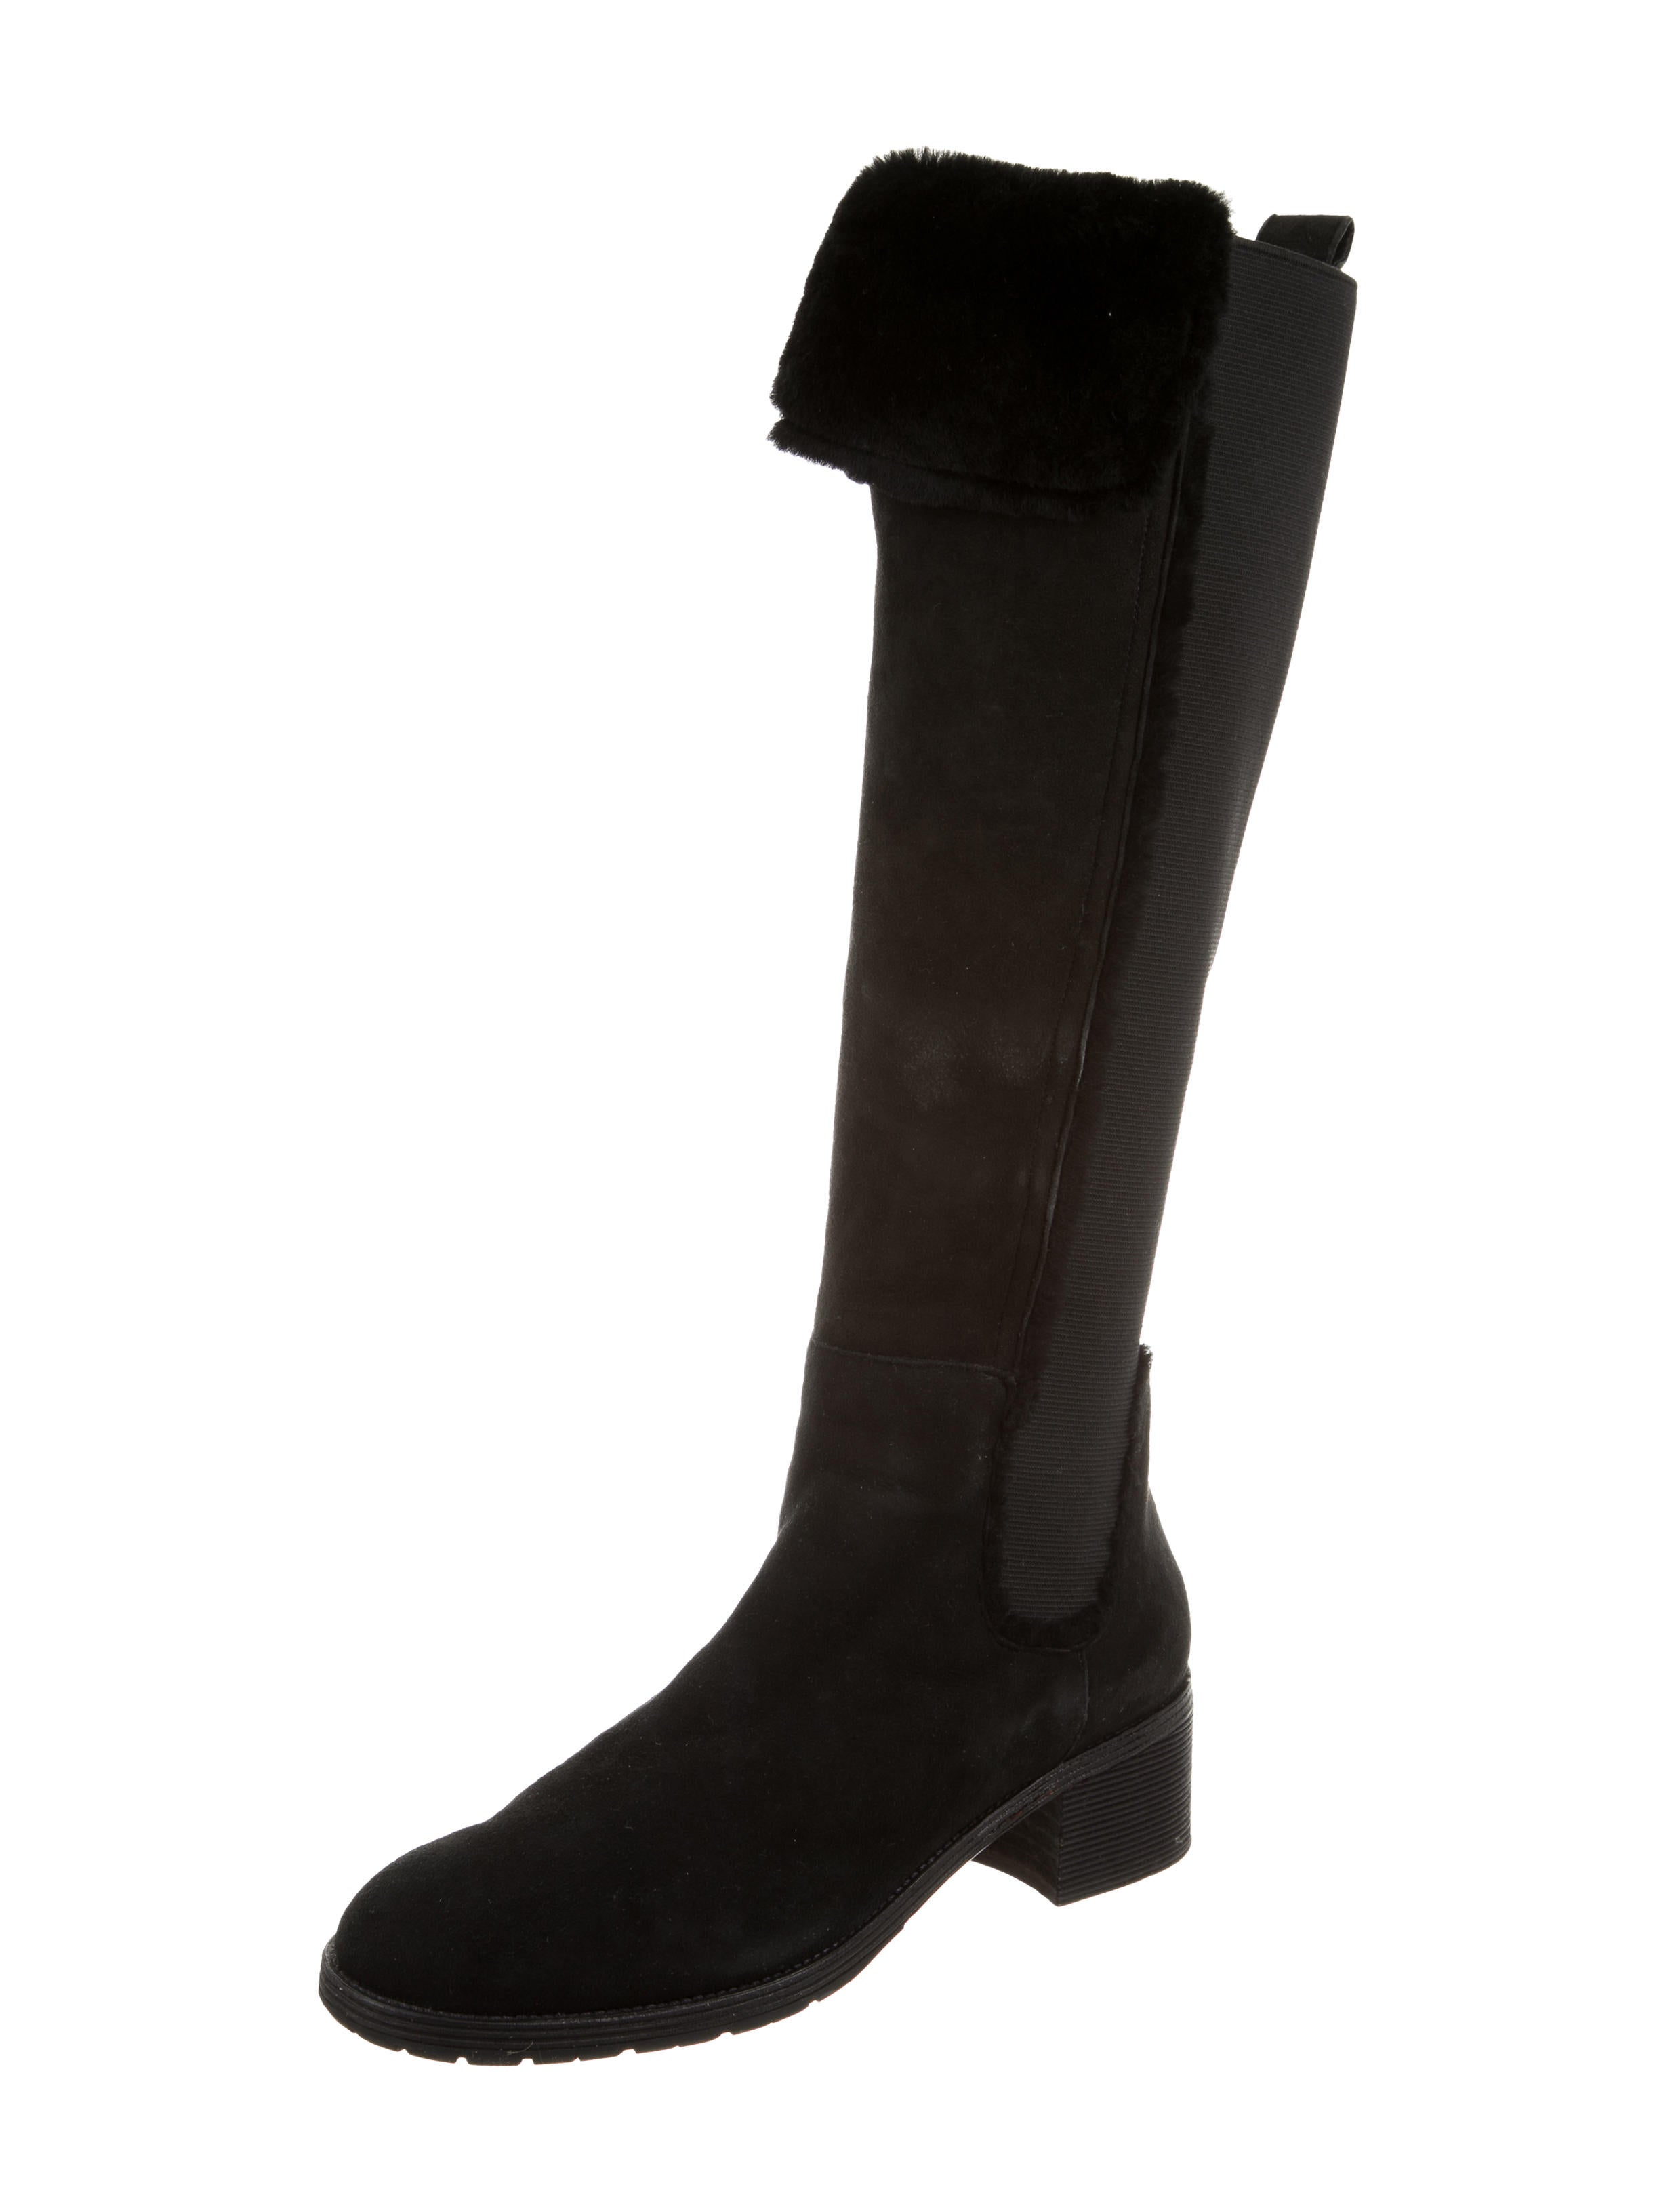 oscar de la renta shearling trimmed knee high boots